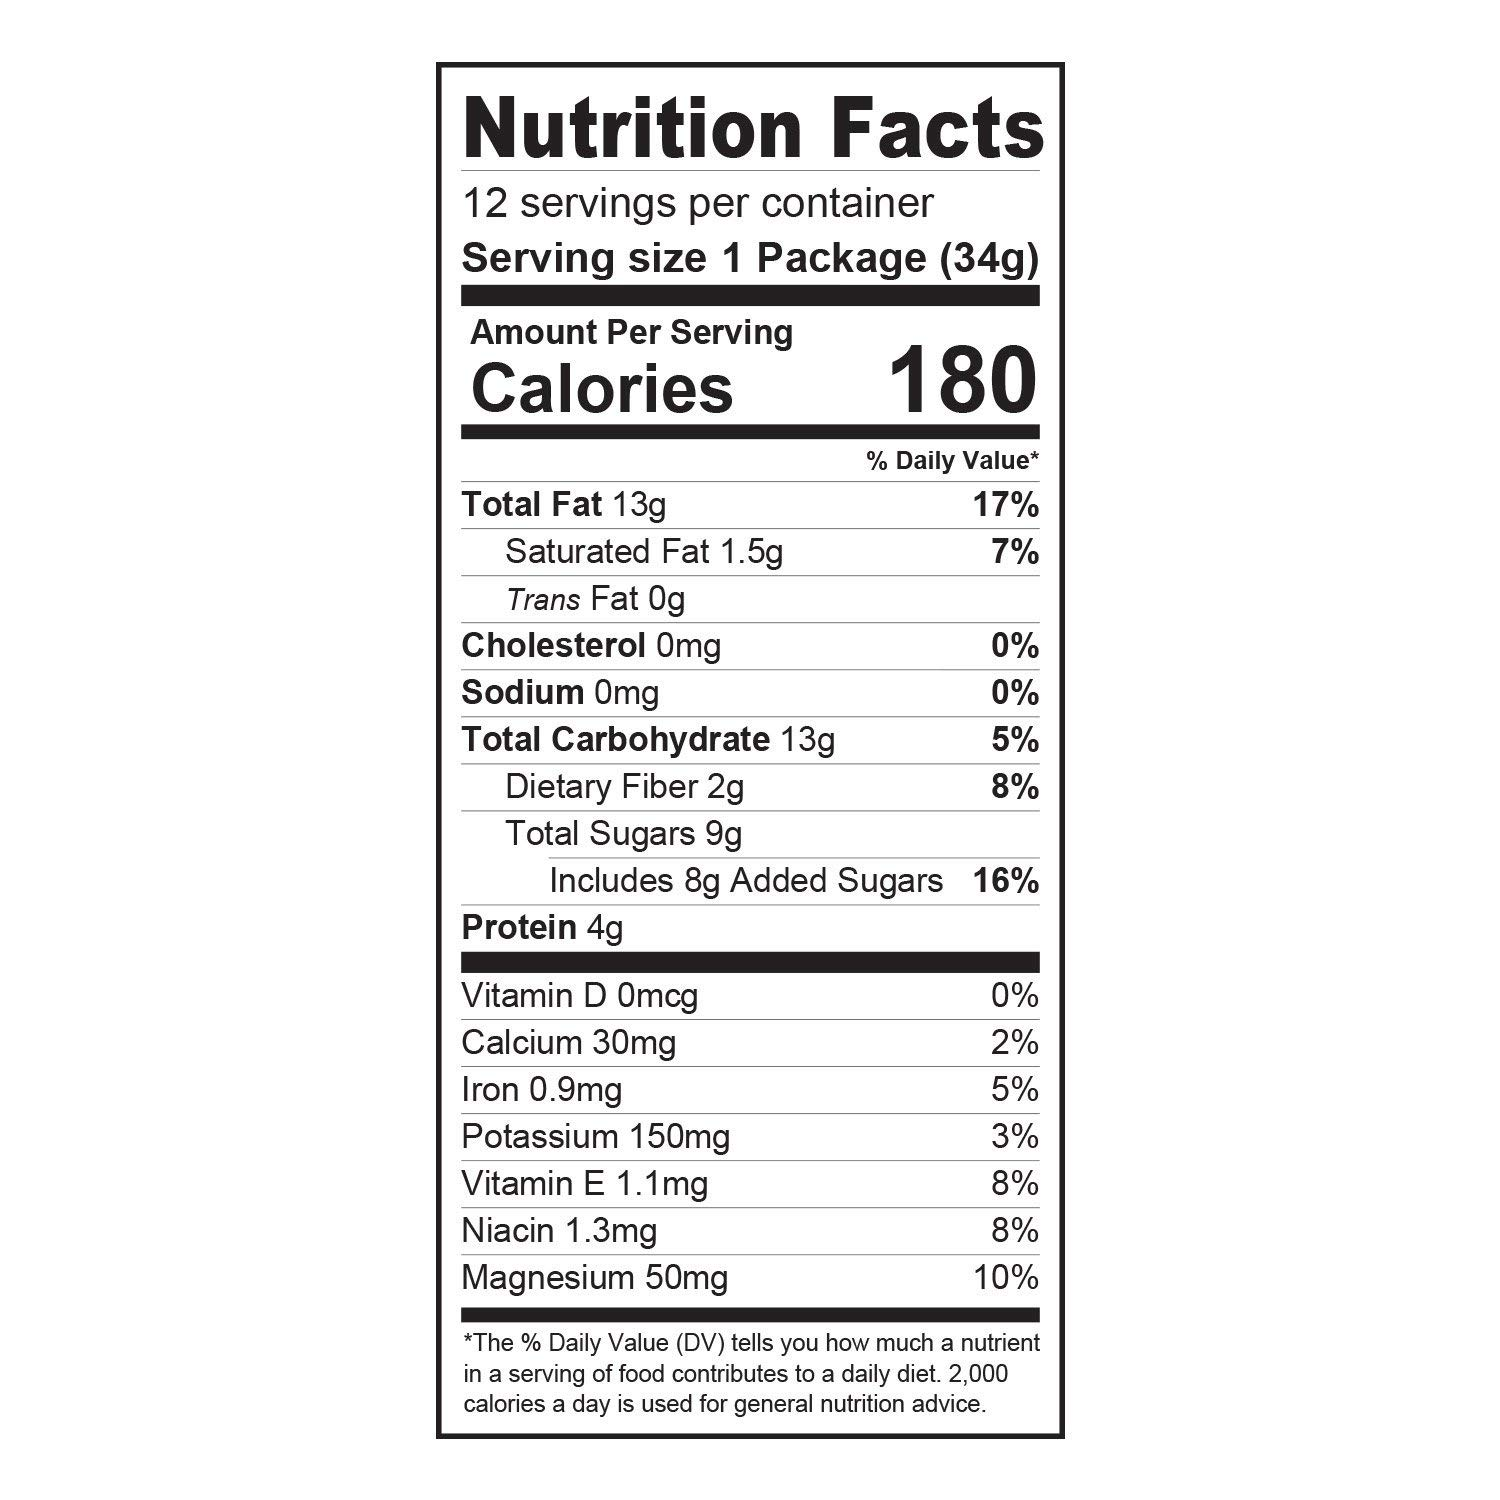 Nature's Garden Trail Mix Snack Packs, Multi Pack 1.2 oz bags, Pack of 24, Omega-3 Deluxe Mix, Cranberry Health Mix (Pack of 2) by Nature's Garden (Image #4)